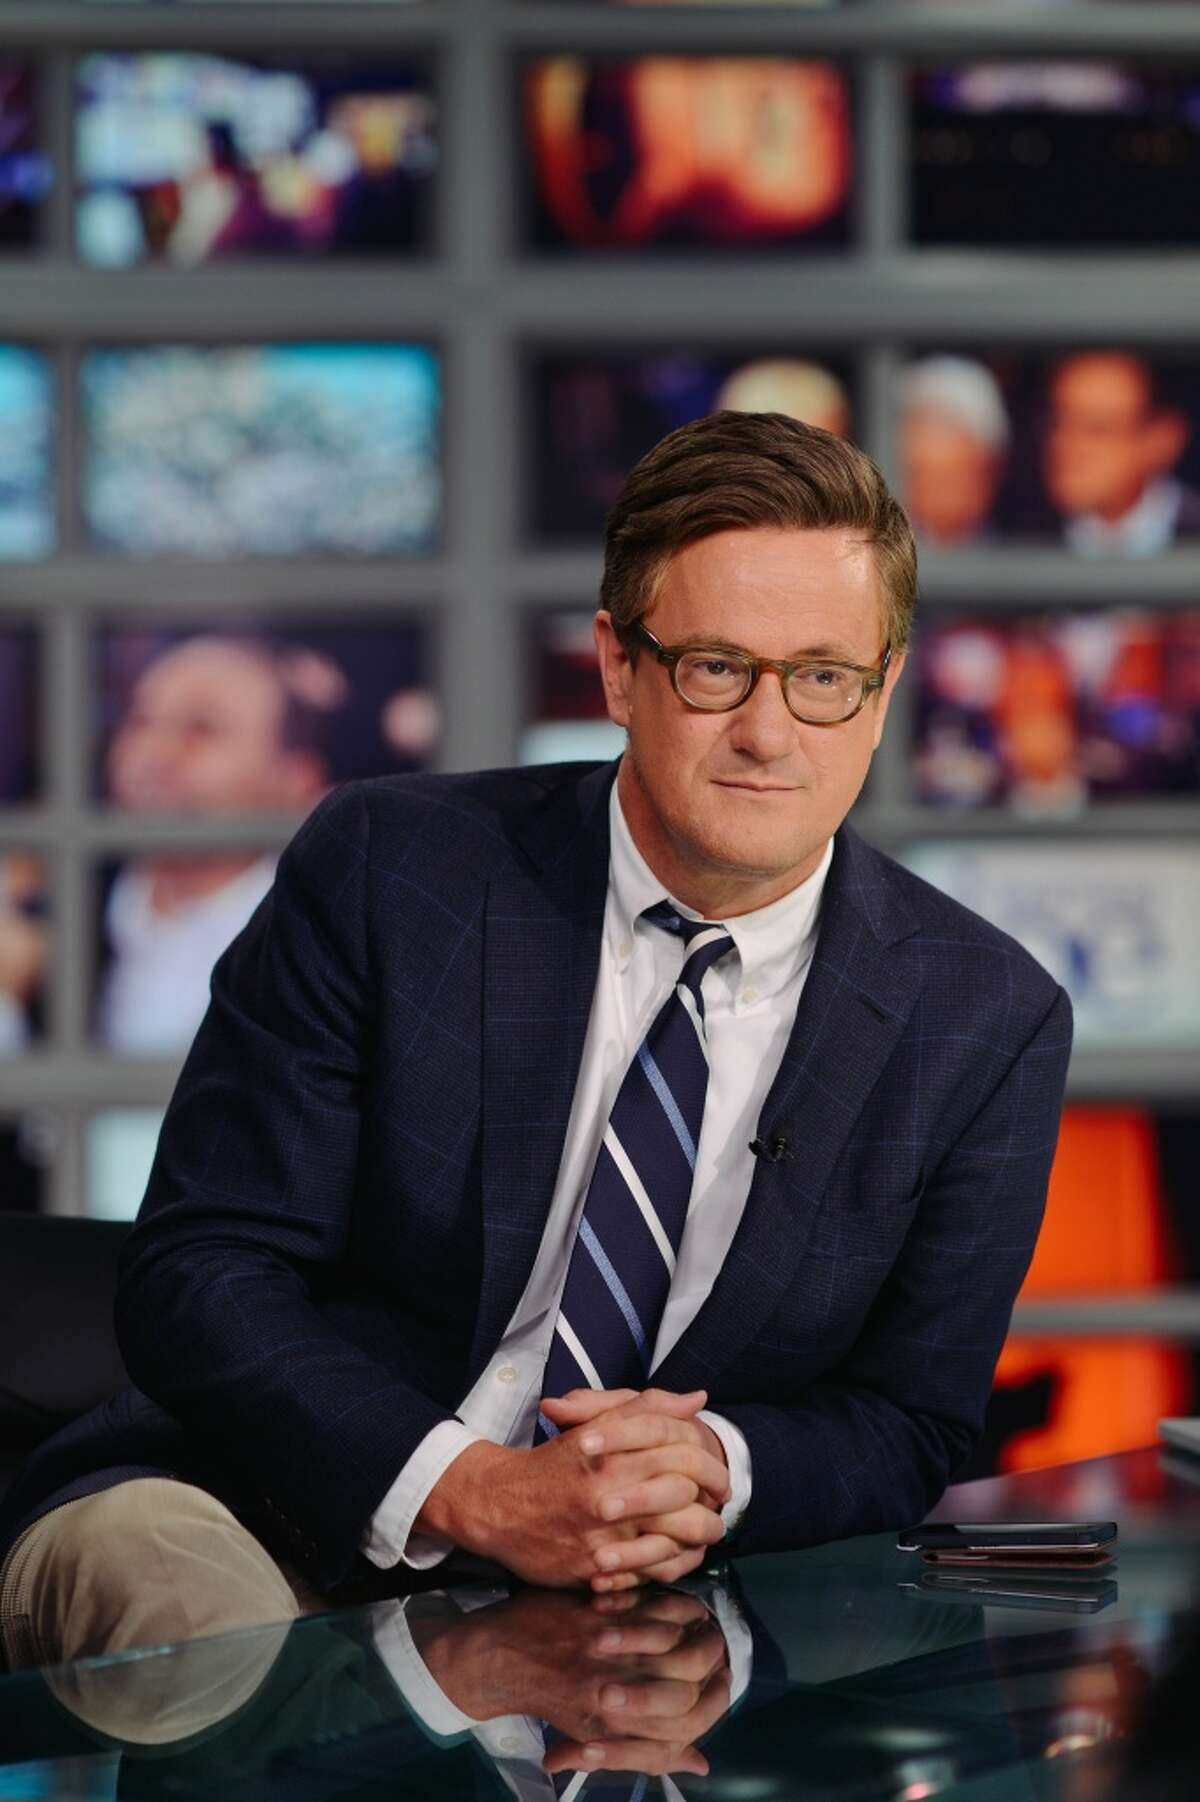 Joe Scarborough, former Republican congressma and host of MSNBC's Morning Joe will visit New Canaan Library in New Canaan, Conn., on Friday, Nov. 15, 2013 to speak about his latest book The Right Path: From Ike to Reagan, How Republicans Once Mastered Politics-And Can Again. The event will be begin at 6:30 p.m. in the Library's Adrian Lamb Room. Seating is limited, and registration is required. Photo by Nathan Congleton